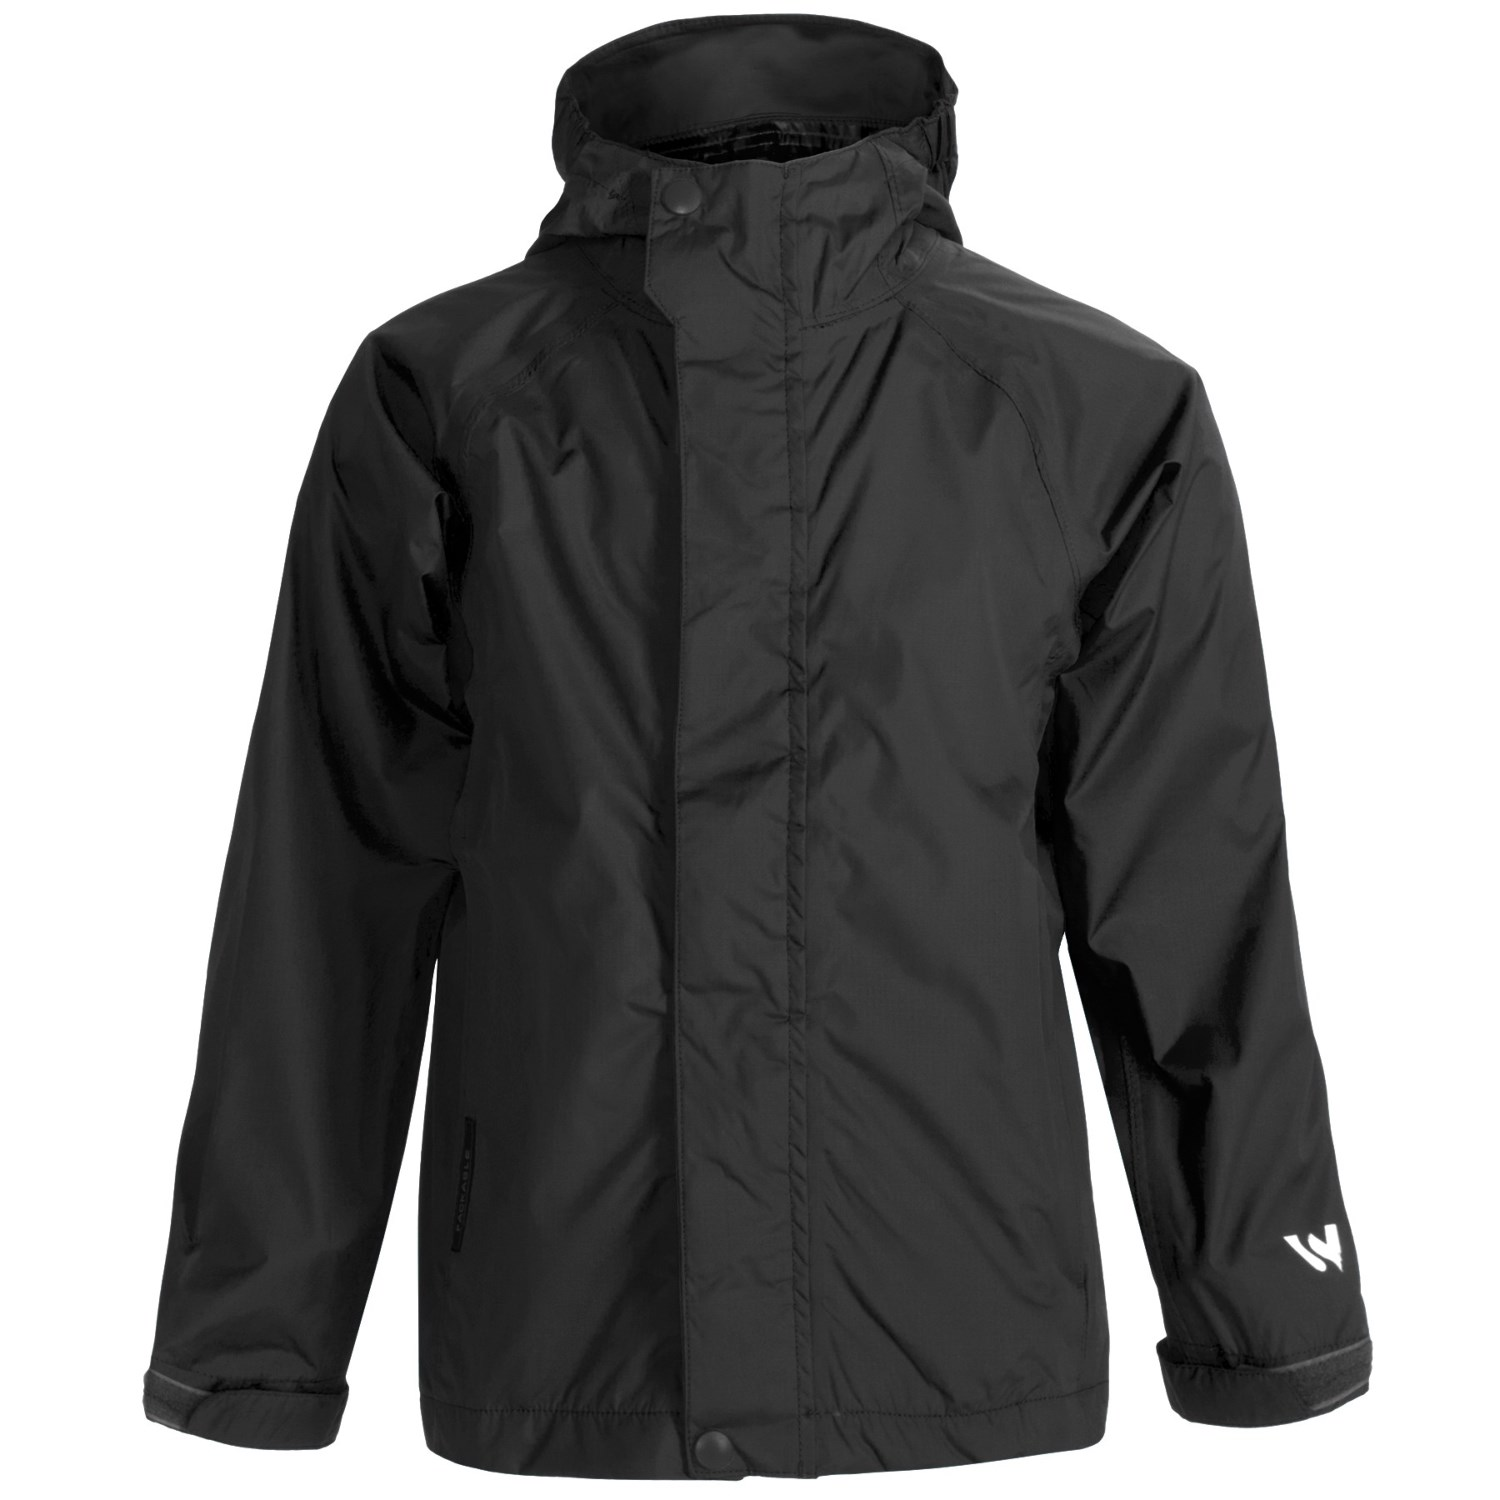 Shop our great selection of youth rain gear at our everyday low price. - Sportsman's Warehouse.